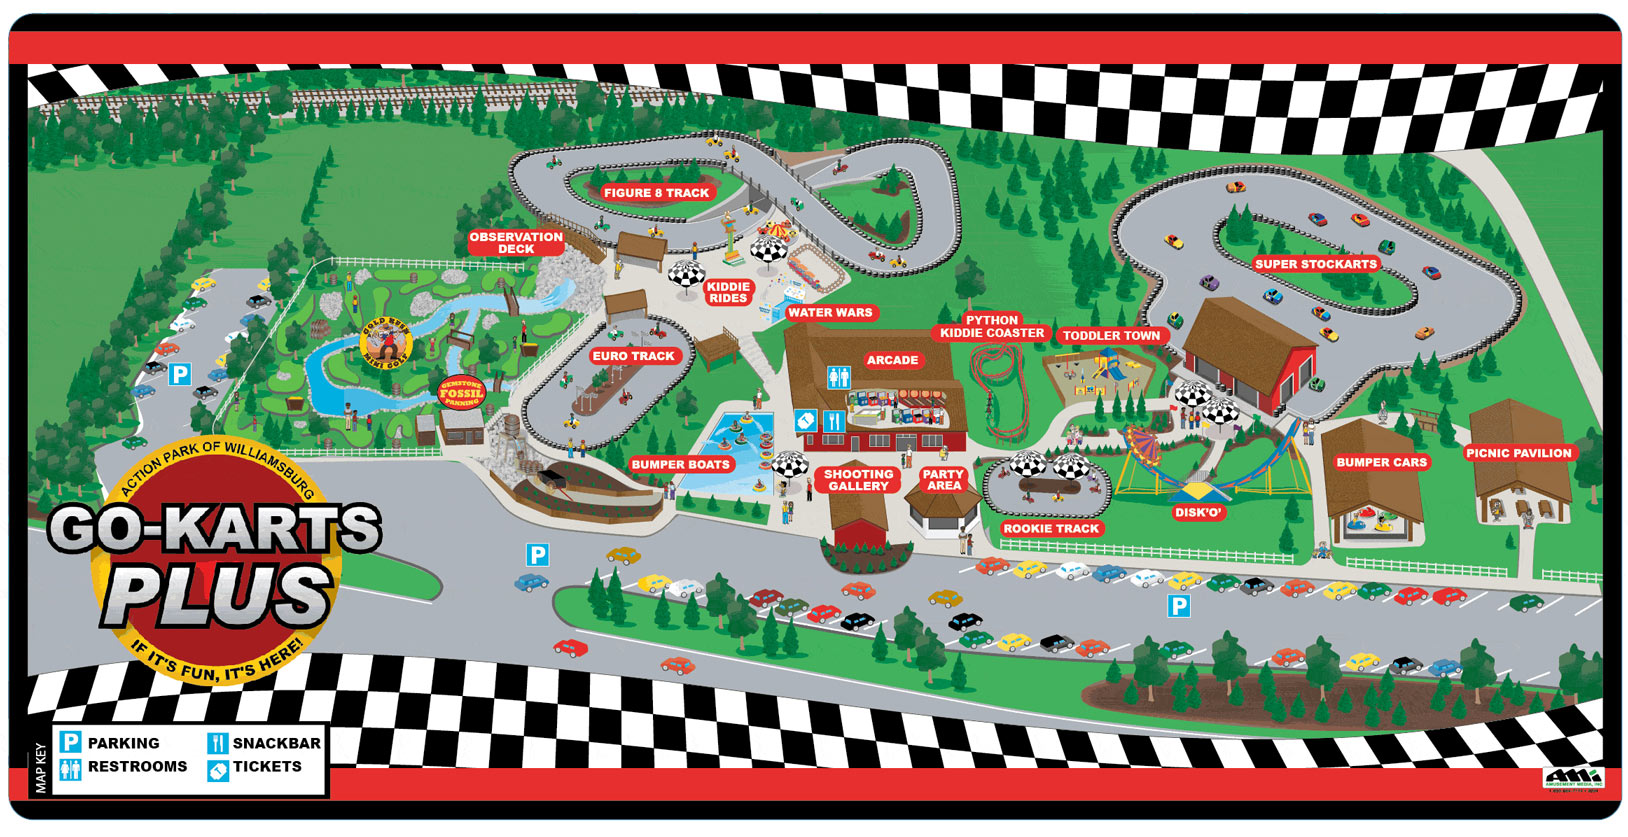 Park Map - Go-Karts Plus - Williamsburg, VA Family Fun & Birthdays